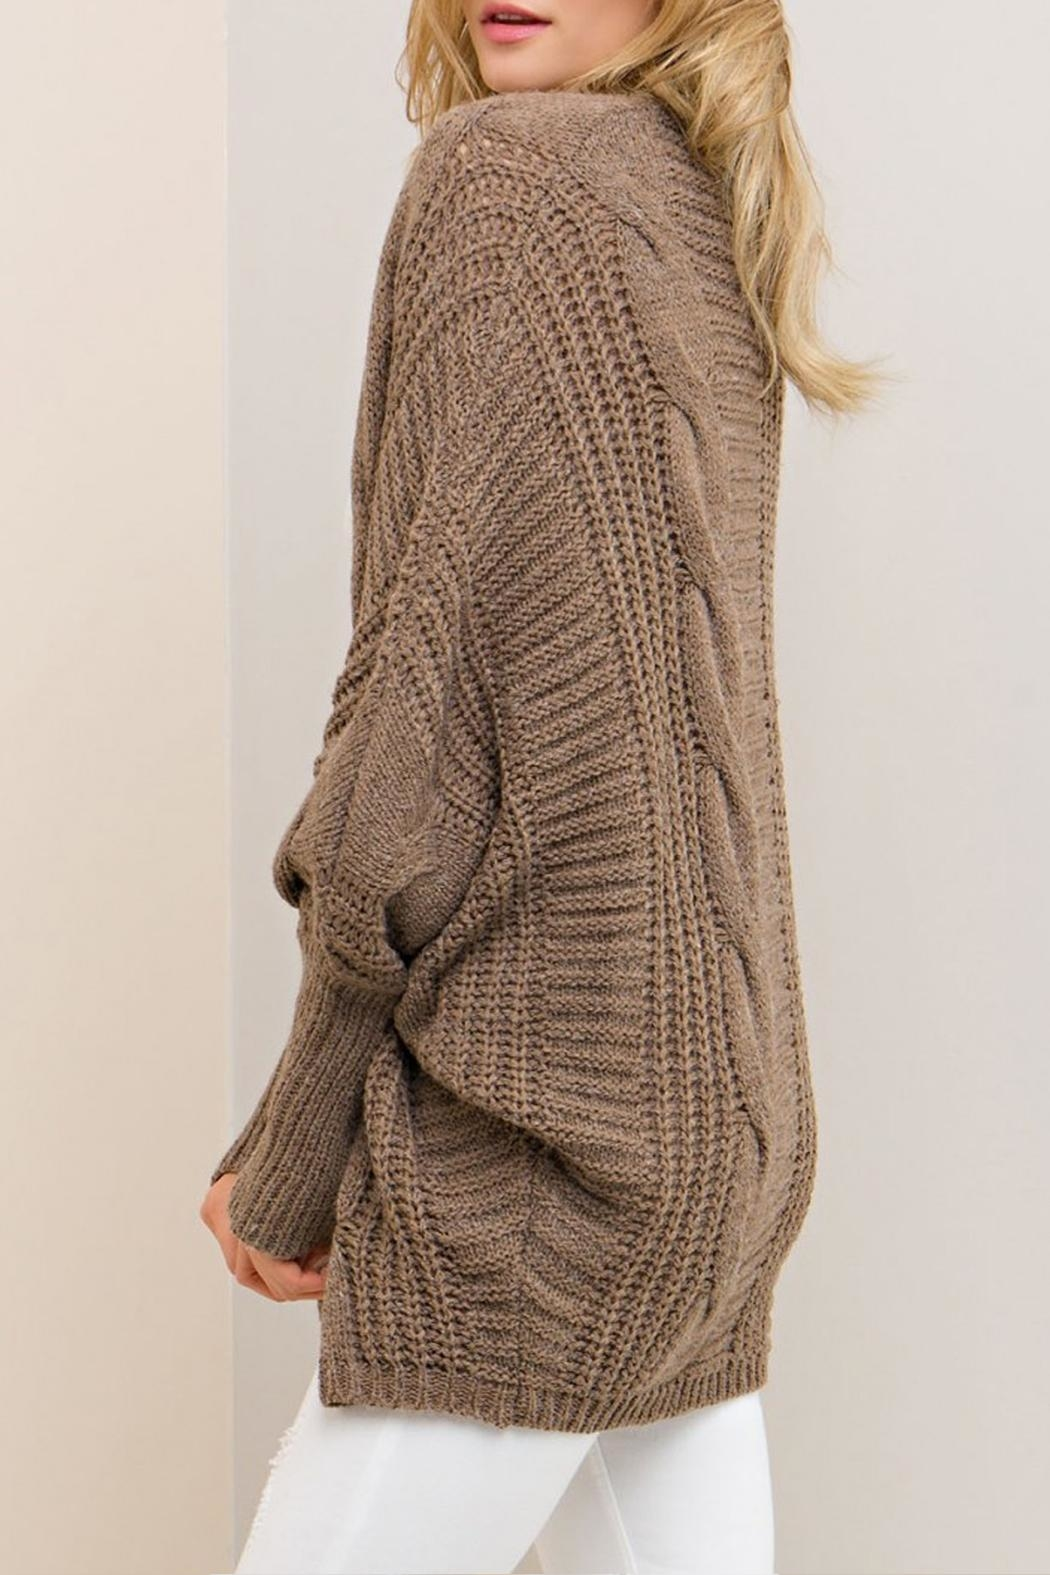 Entro Mocha Open Cardigan - Back Cropped Image